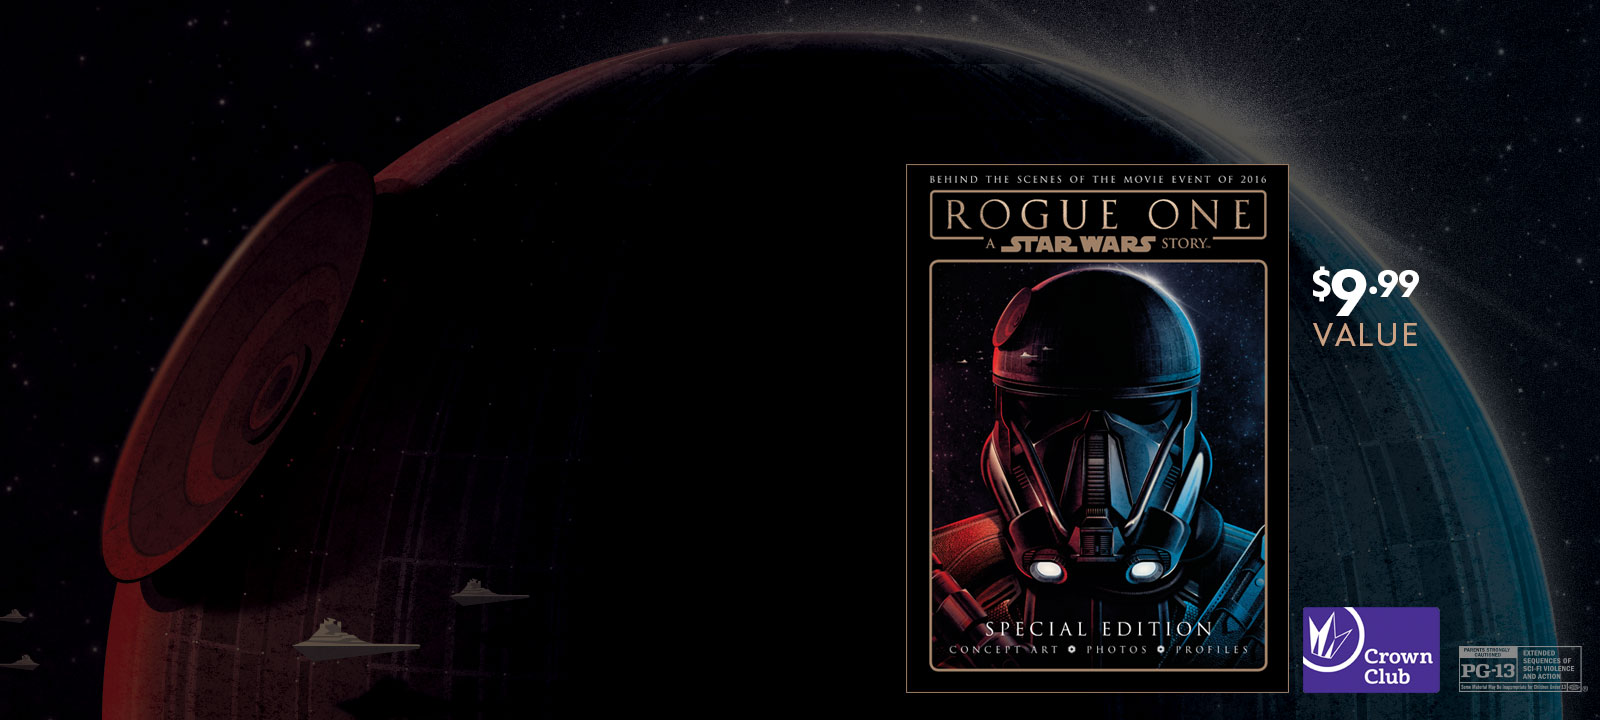 Free Rogue One Star Wars Story Special Edition Digital Magazine